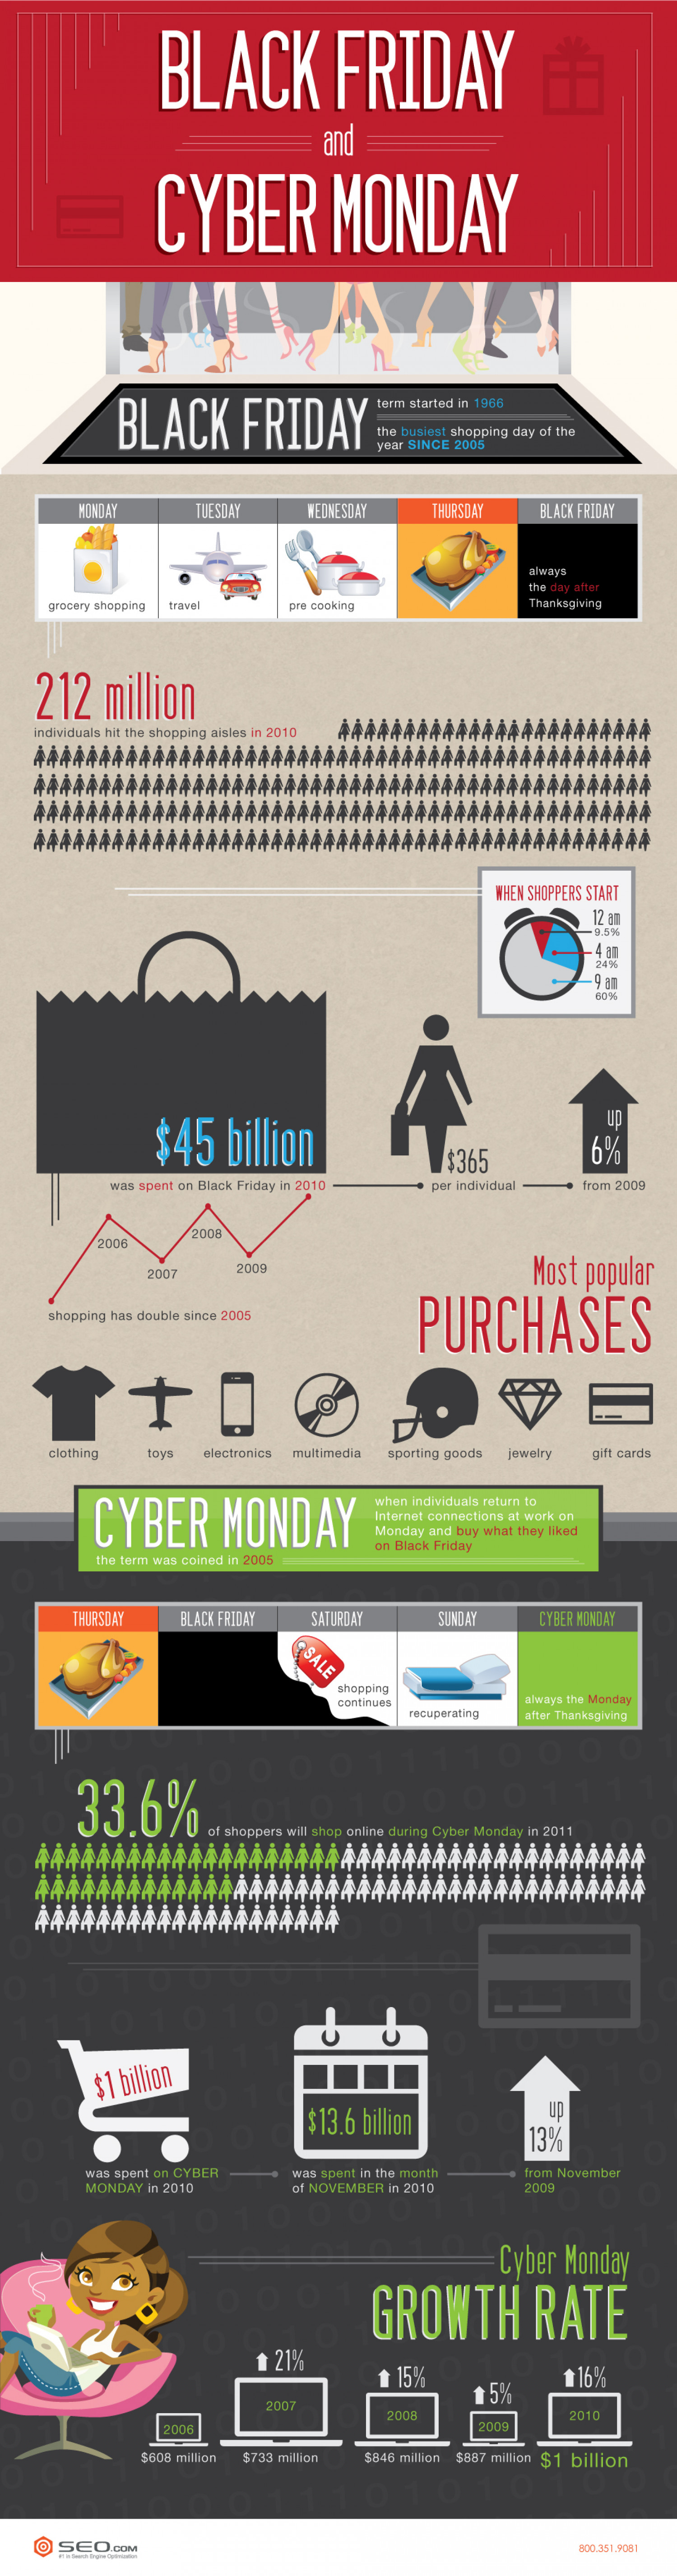 Black Friday & Cyber Monday Infographic